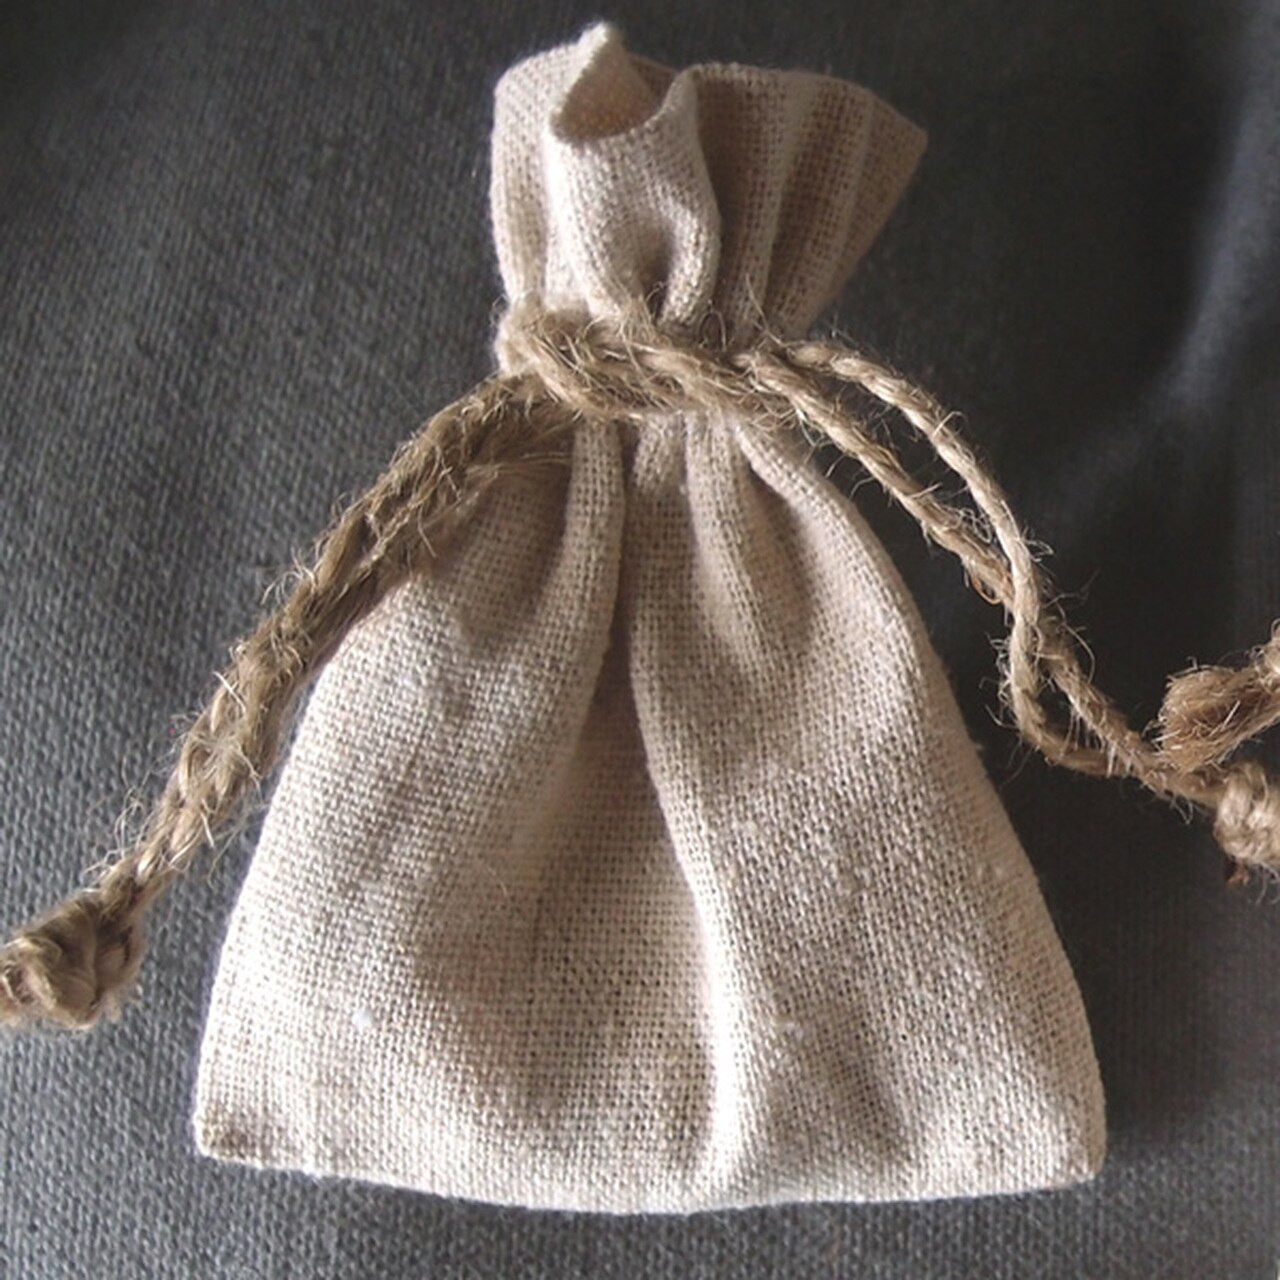 Linen Drawstring Bag with Jute Cord 3 x 4 inches, Wholesale Linen Drawstring Bags | Packaging Decor